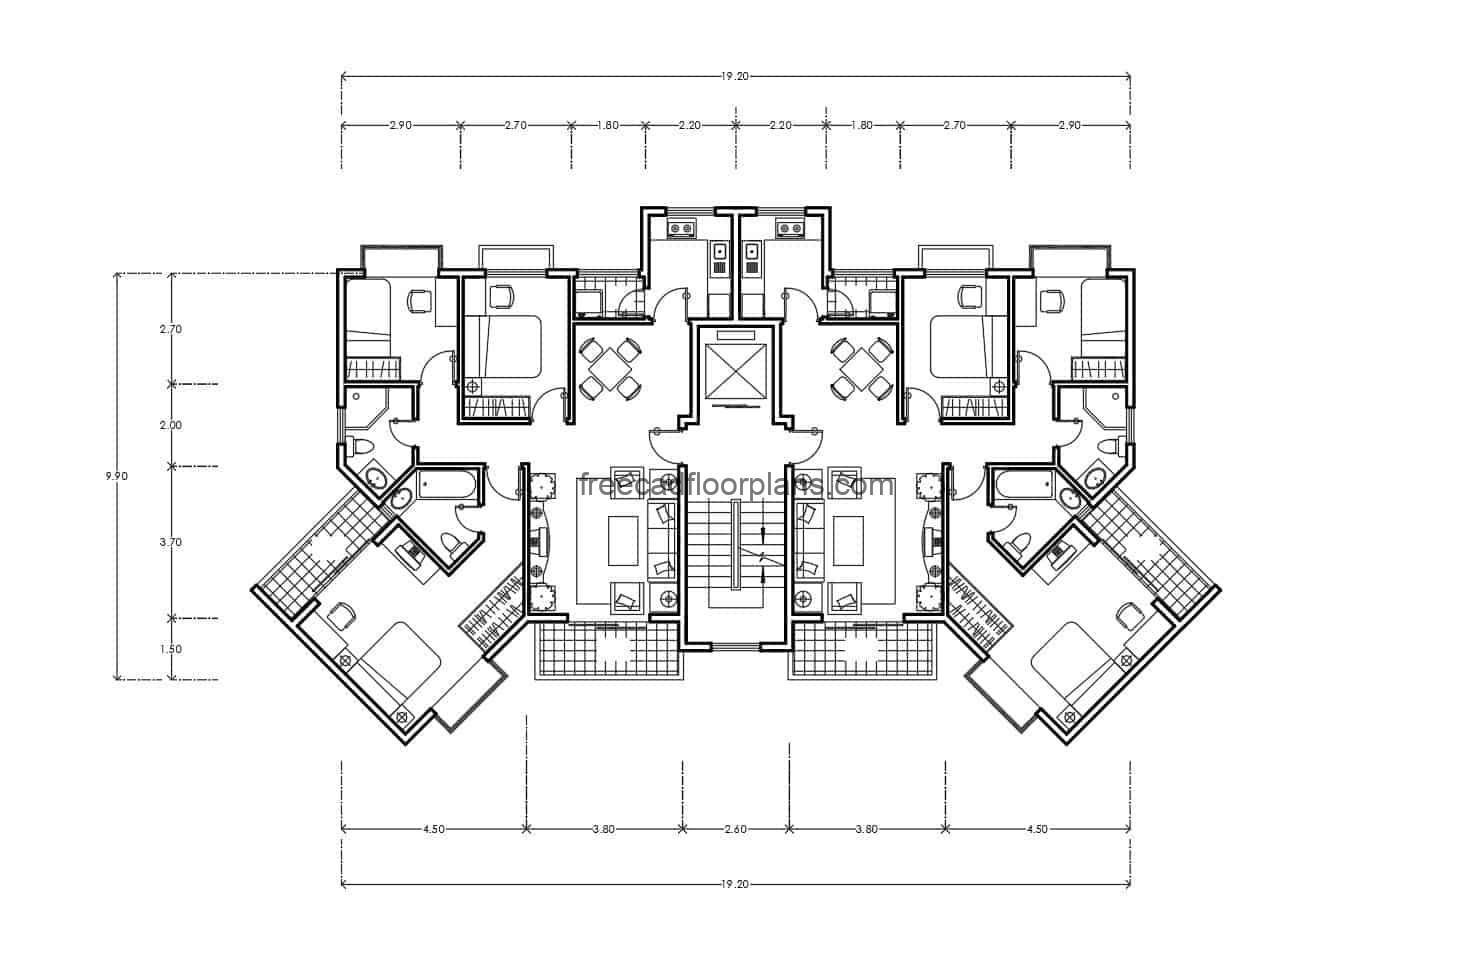 plans drawn in Autocad DWG format Architectural project for free download of residential building complex, dimensioned and architectural plant